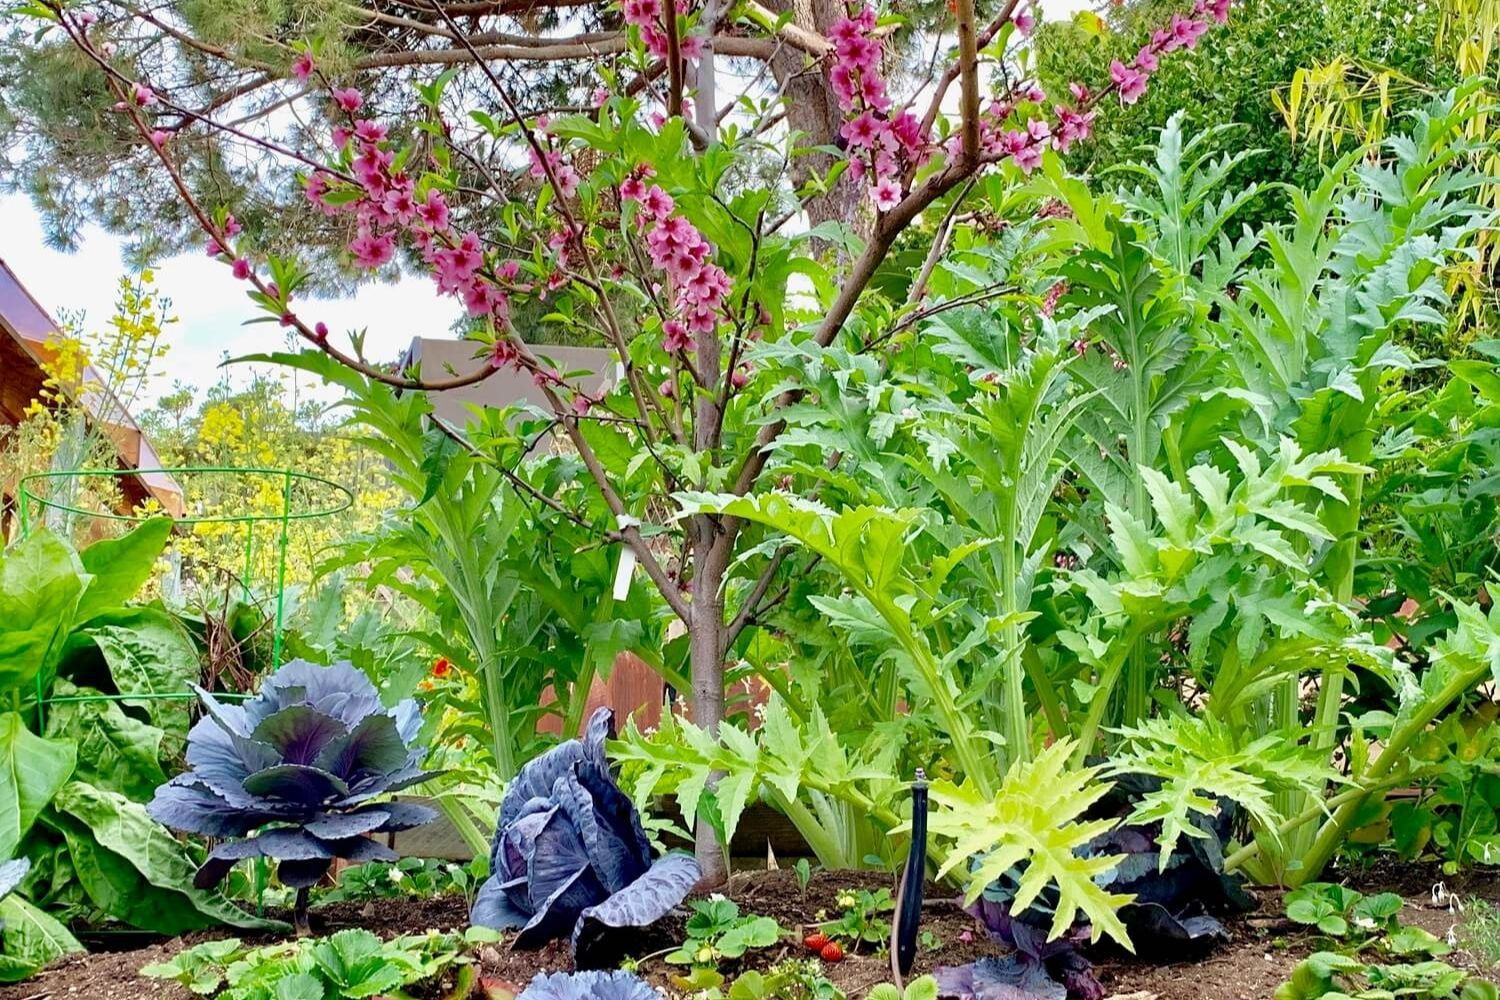 plants produced by biodynamic farming at Inn at Moonlight Beach